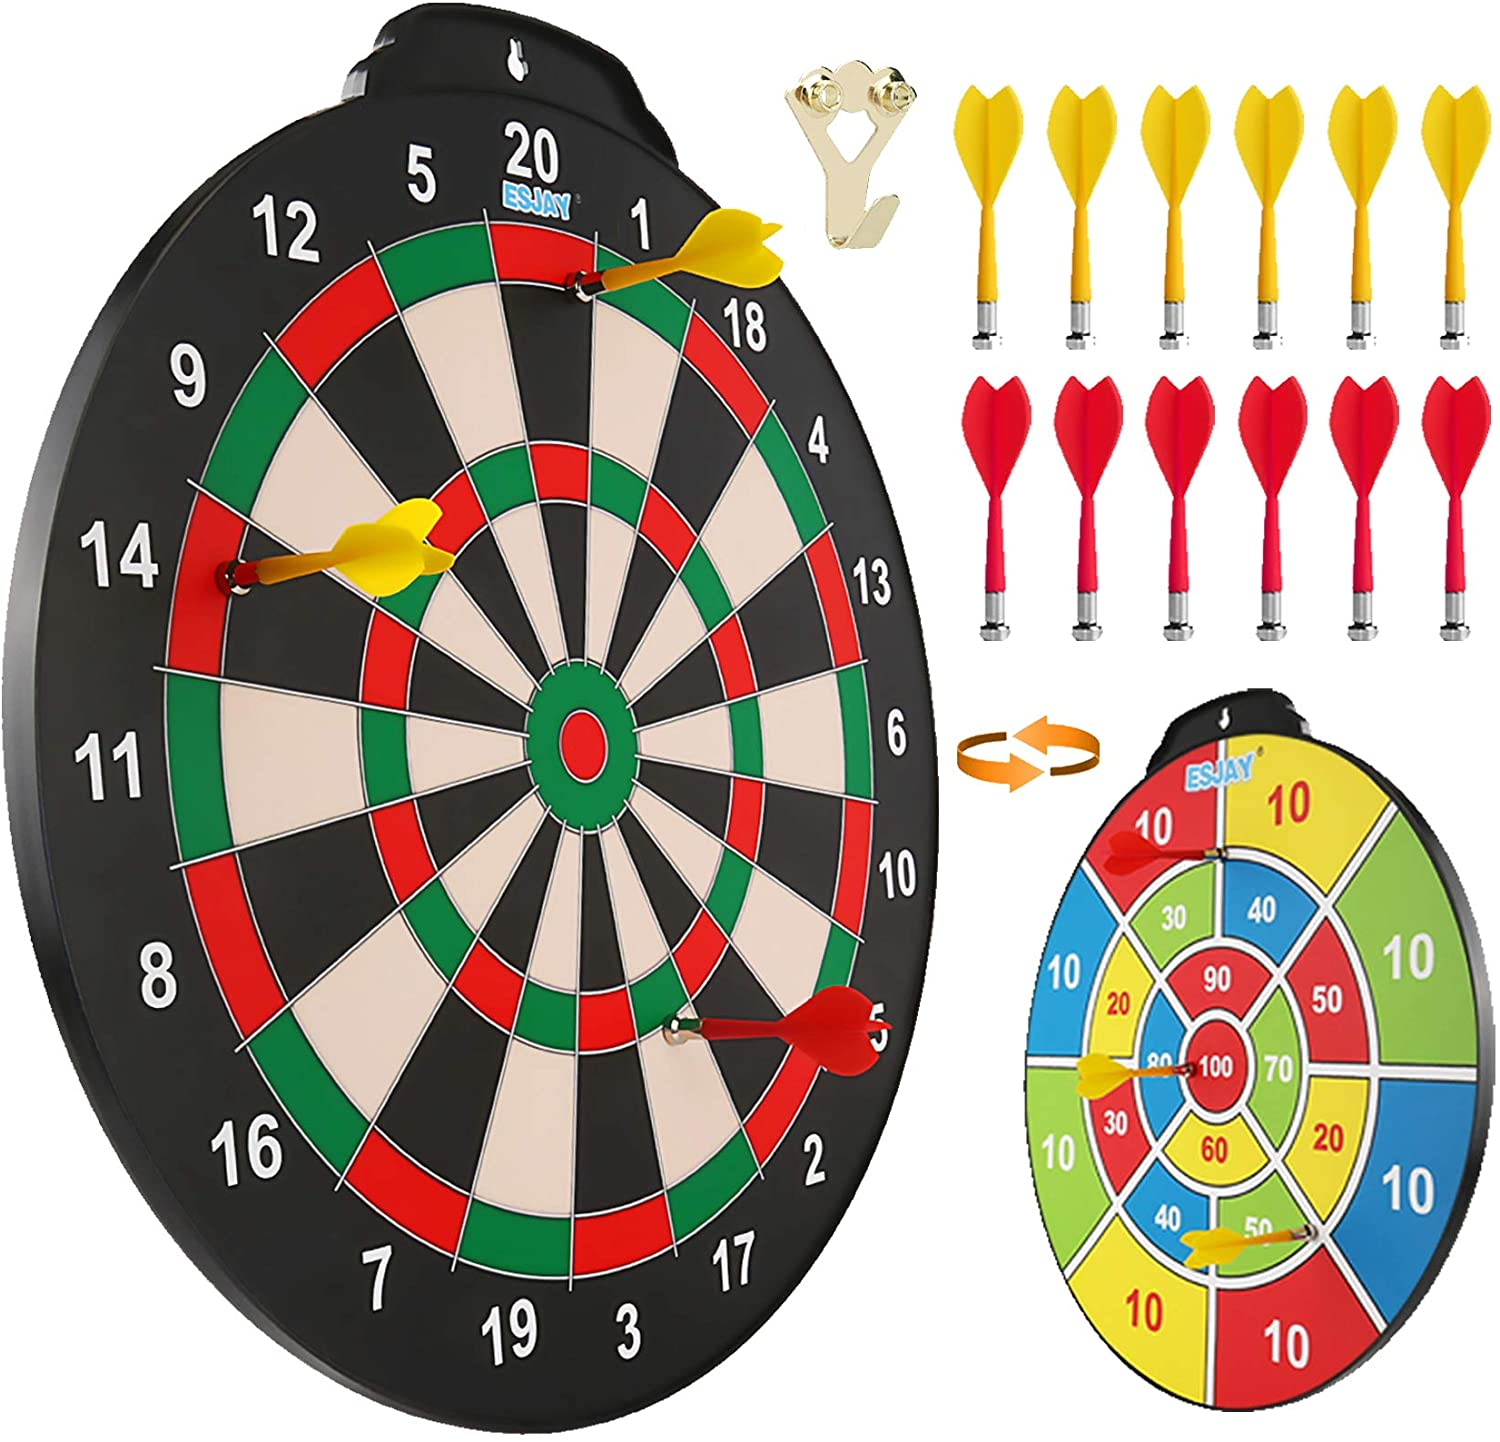 Esjay Magnetic Dart Board Set